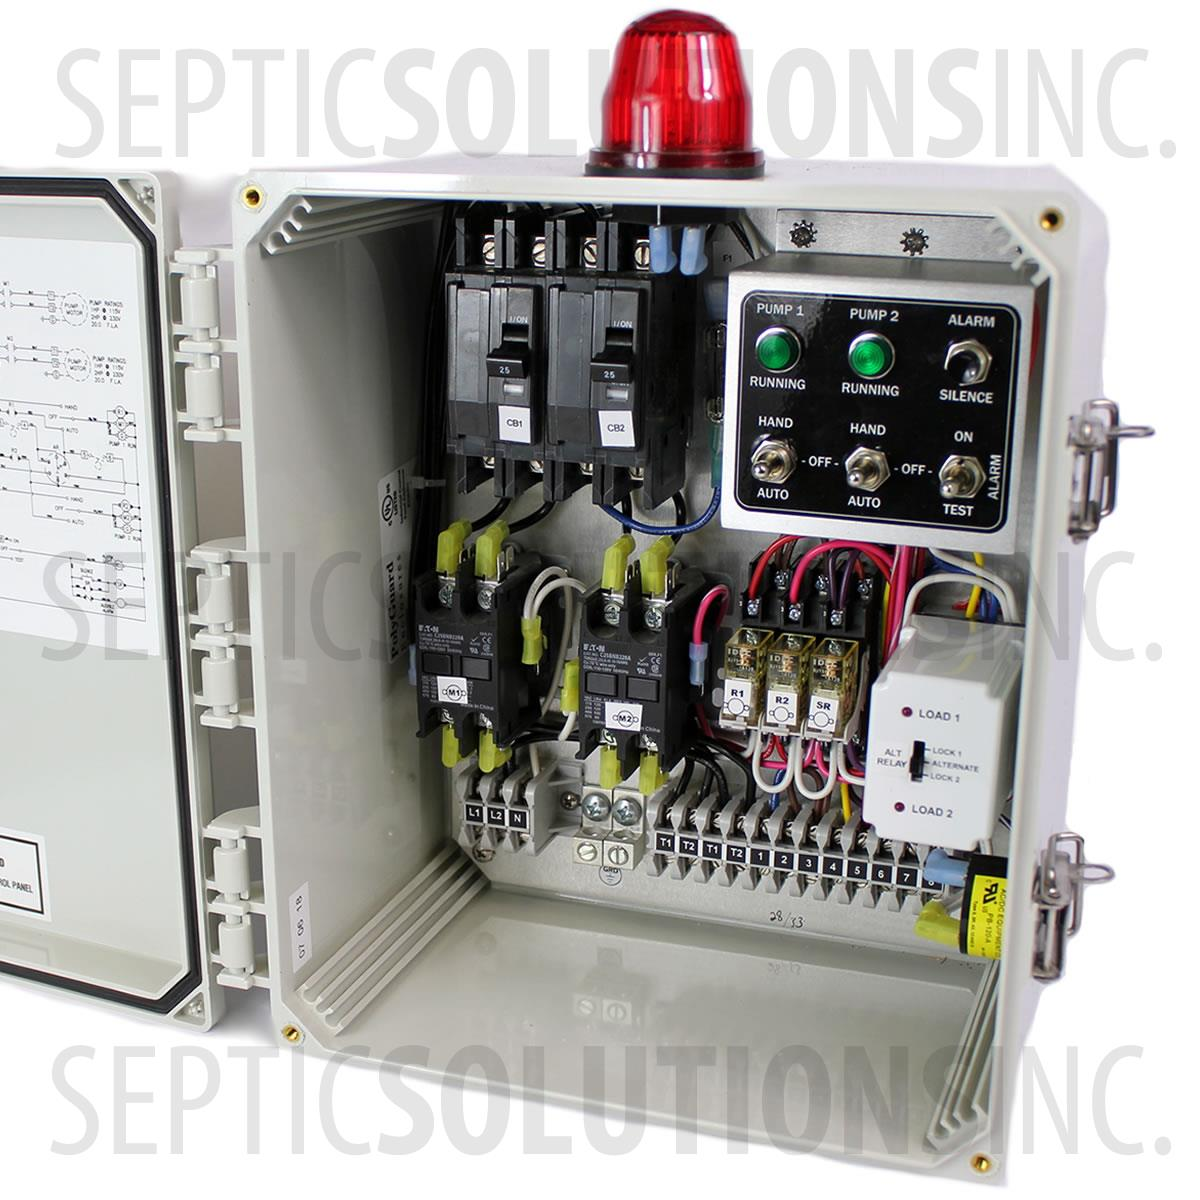 Duplex Lift Station Wiring Diagram - Introduction To Electrical ...